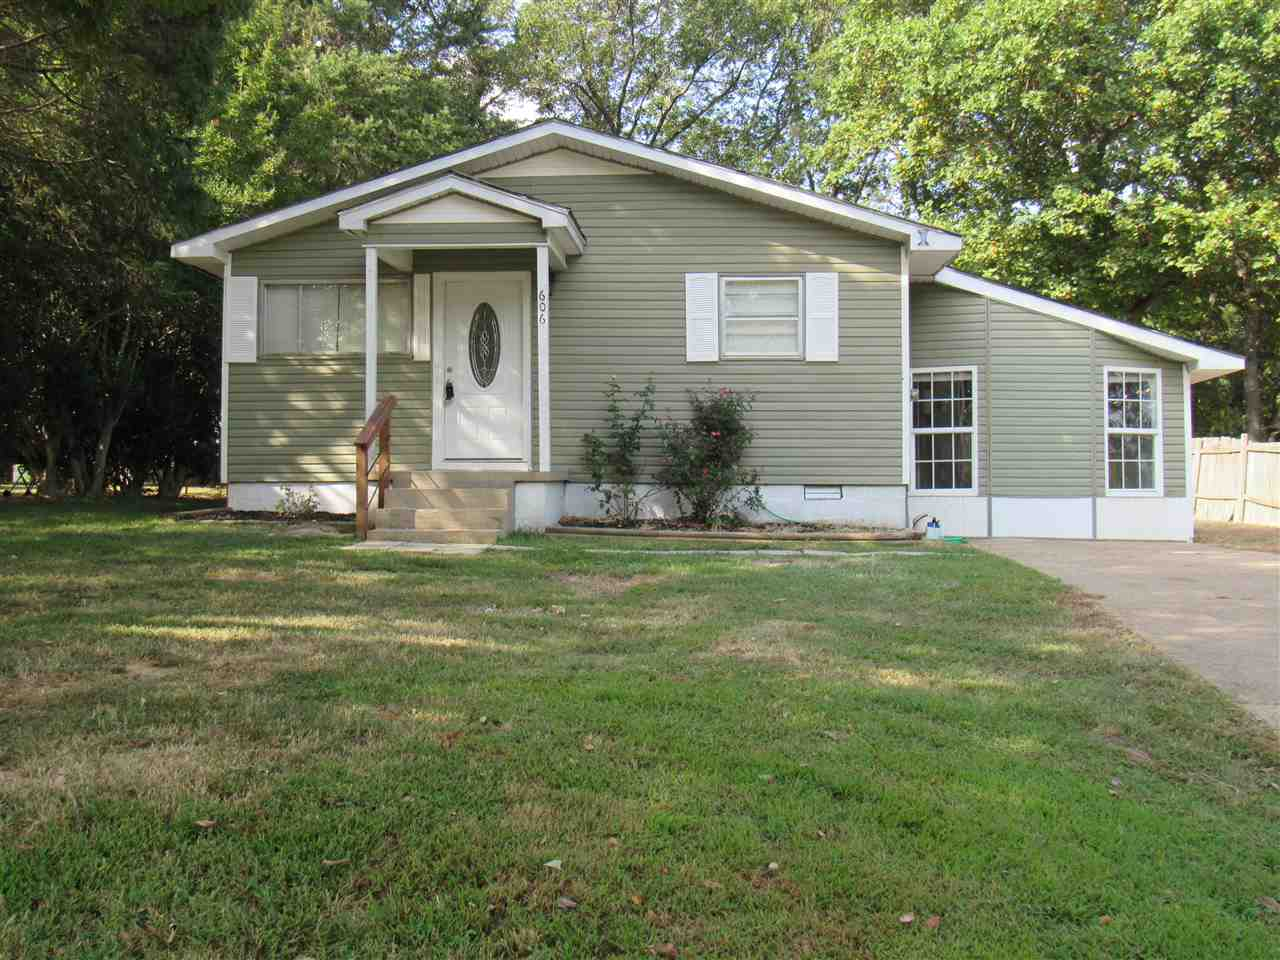 Edie Smith Tennessee Realty Listings Tennessee Realty